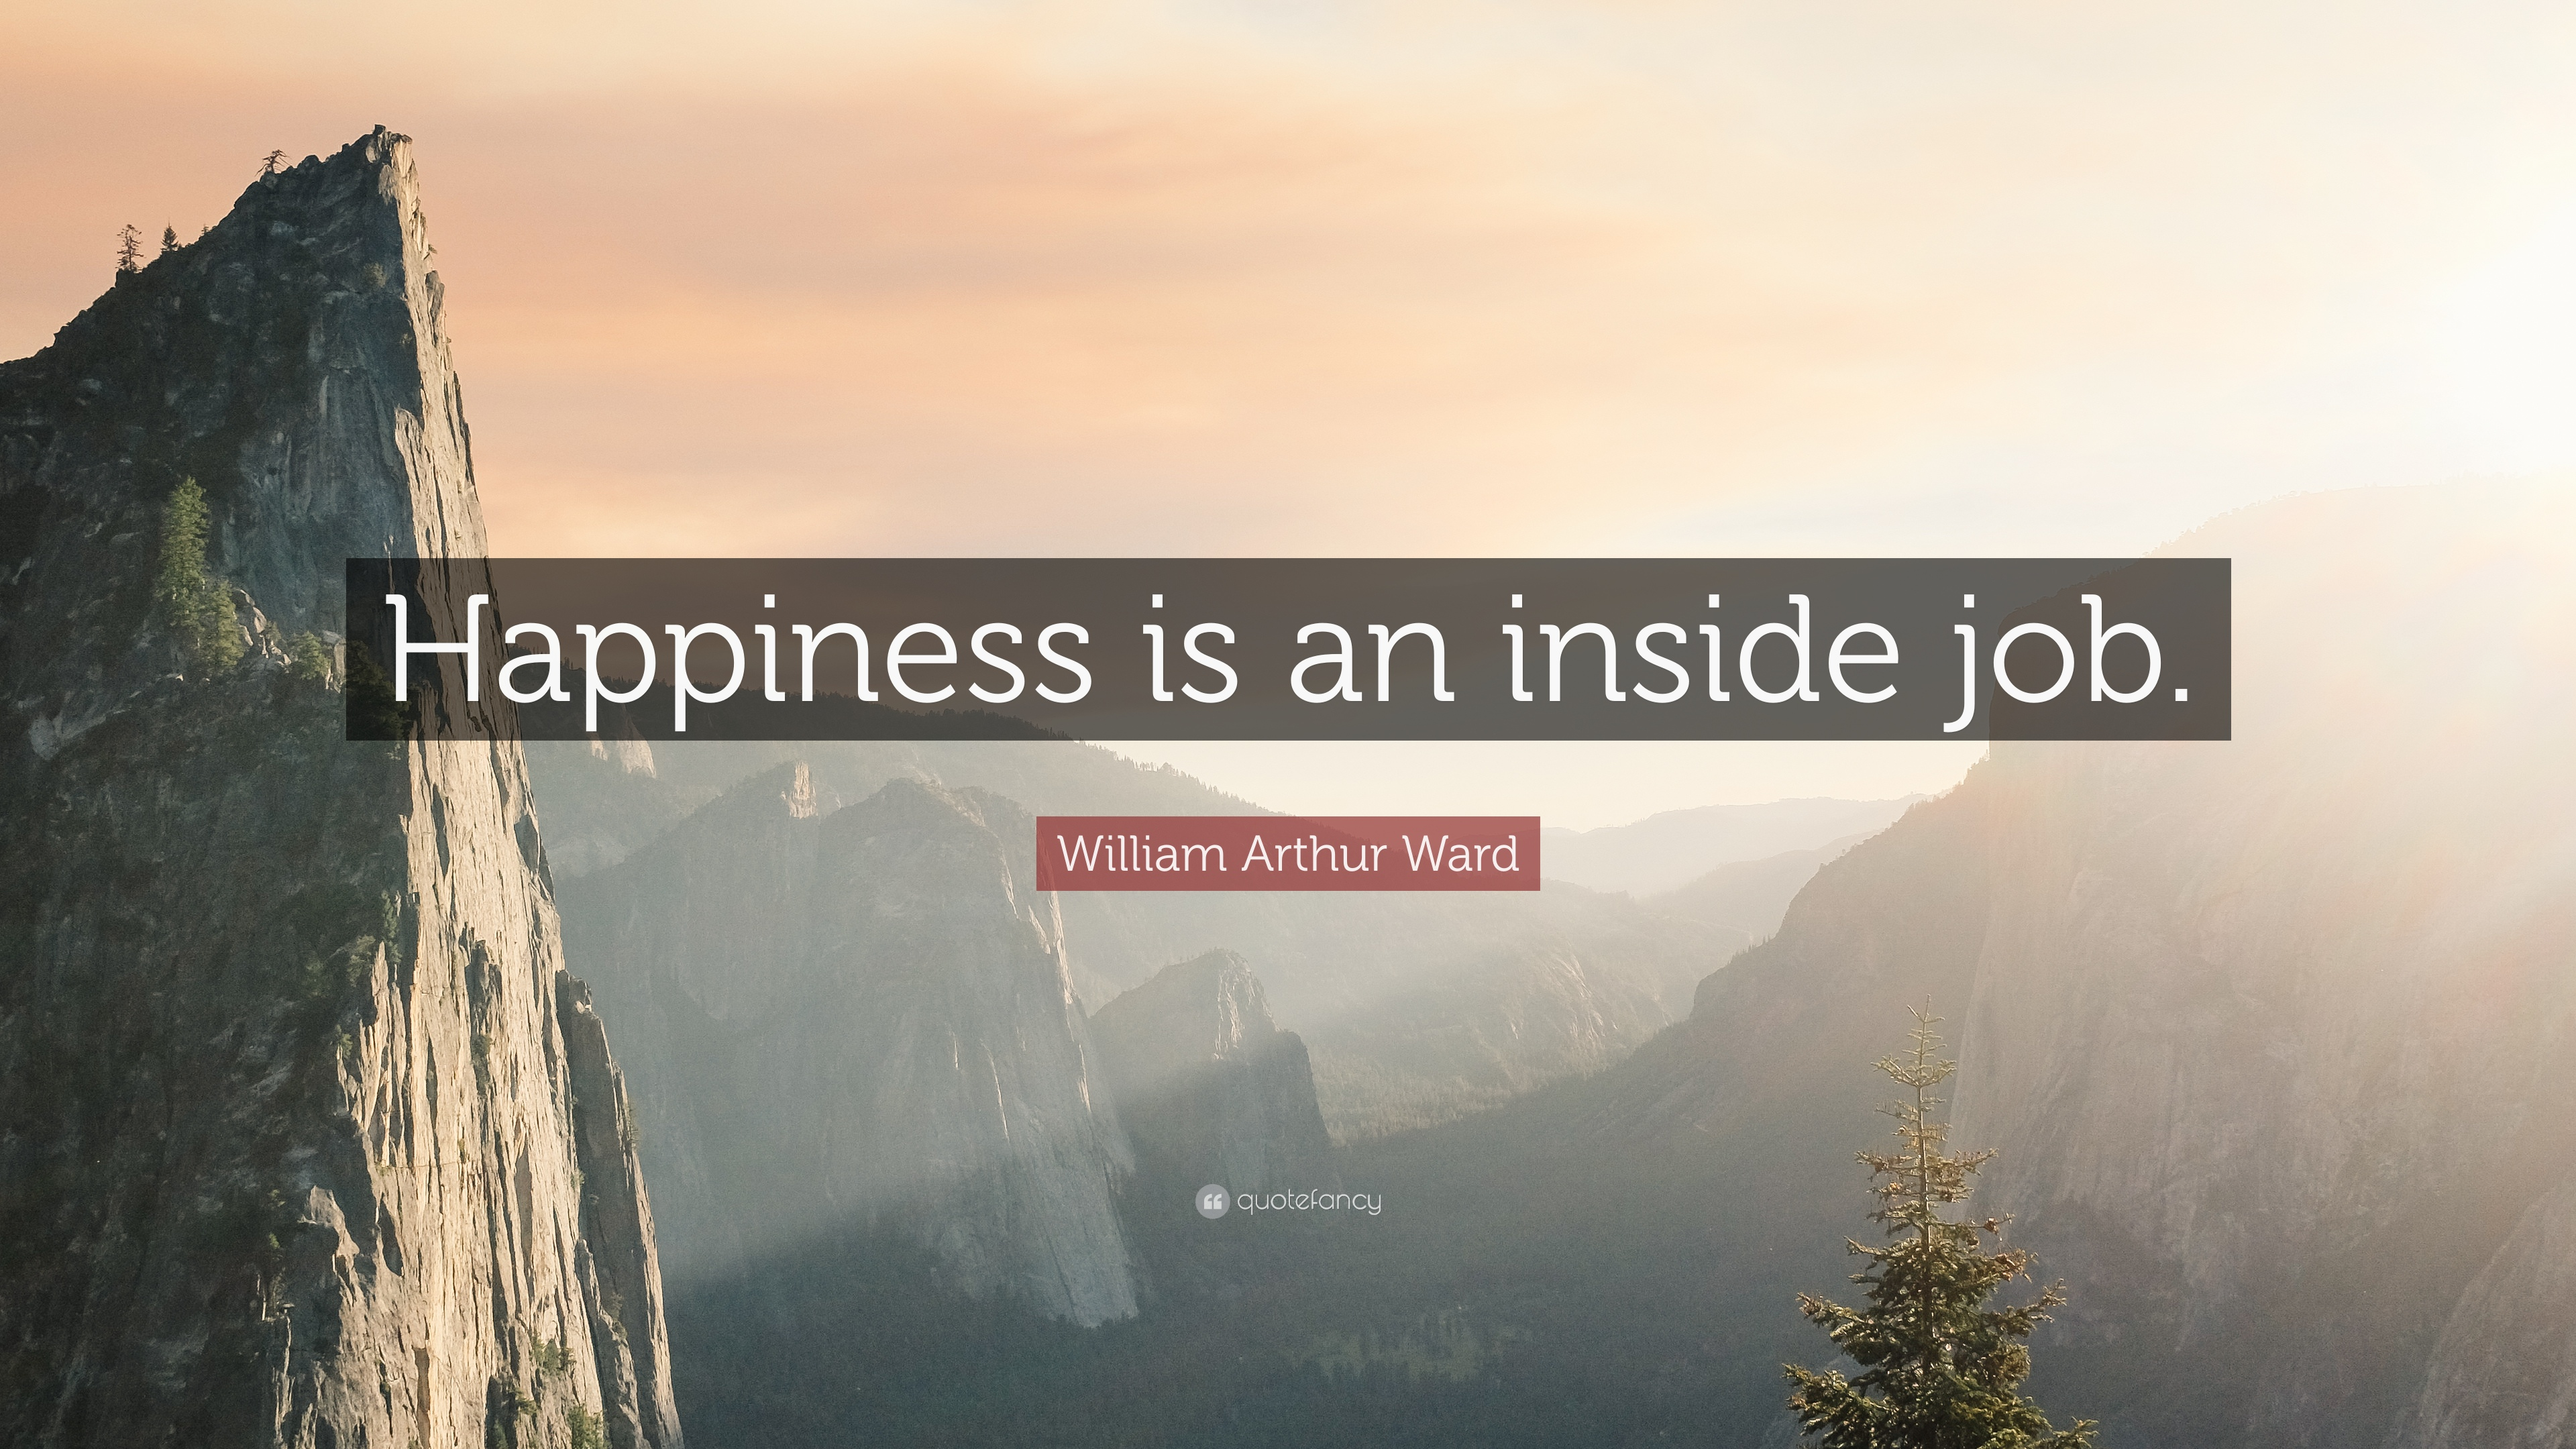 Image result for happiness is an inside job william arthur ward